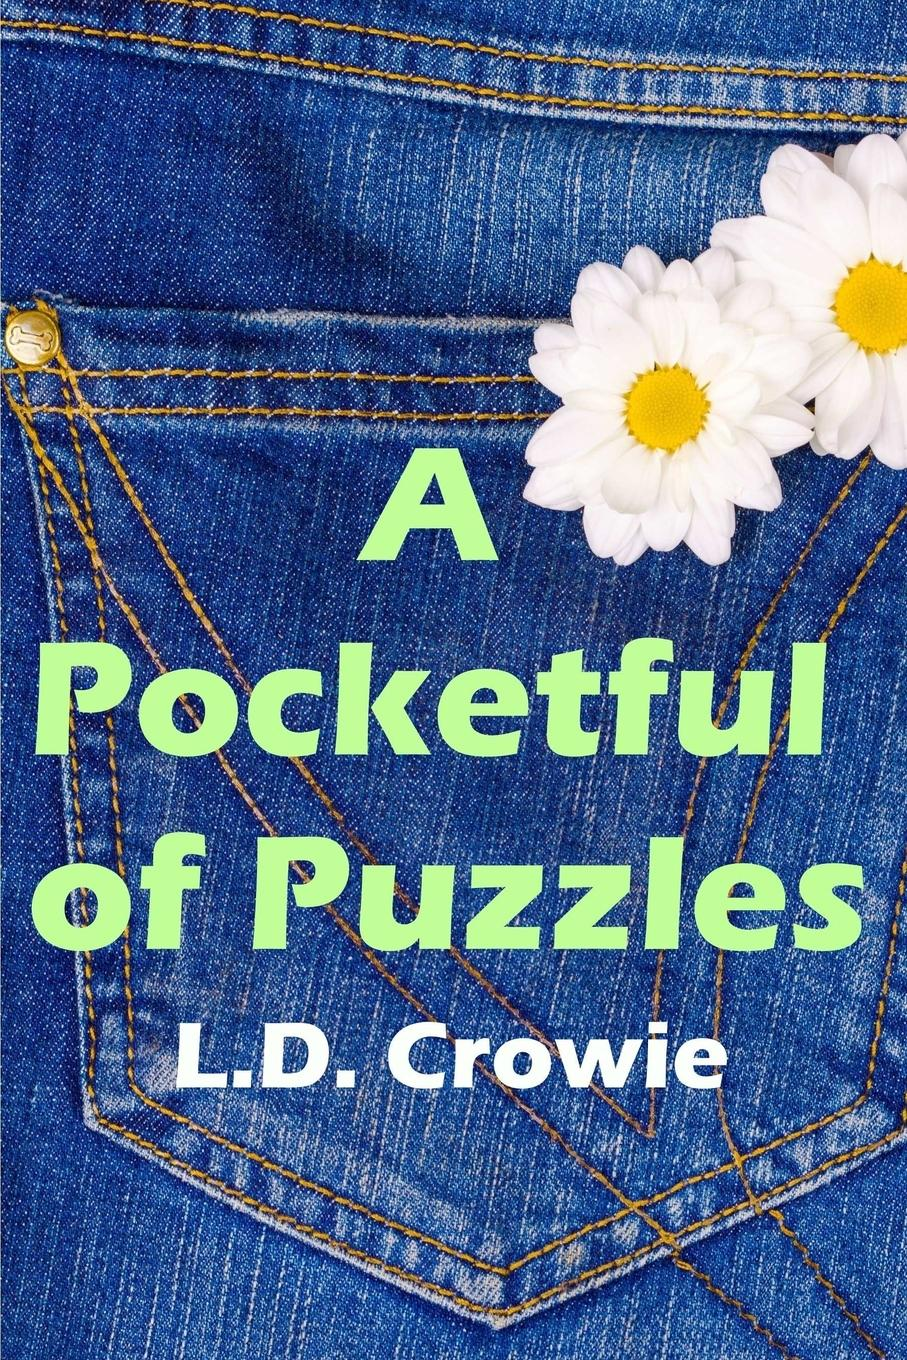 L.D. Crowie A Pocketful of Puzzles fullerton j pocketful of dreams isbn 9781786491381